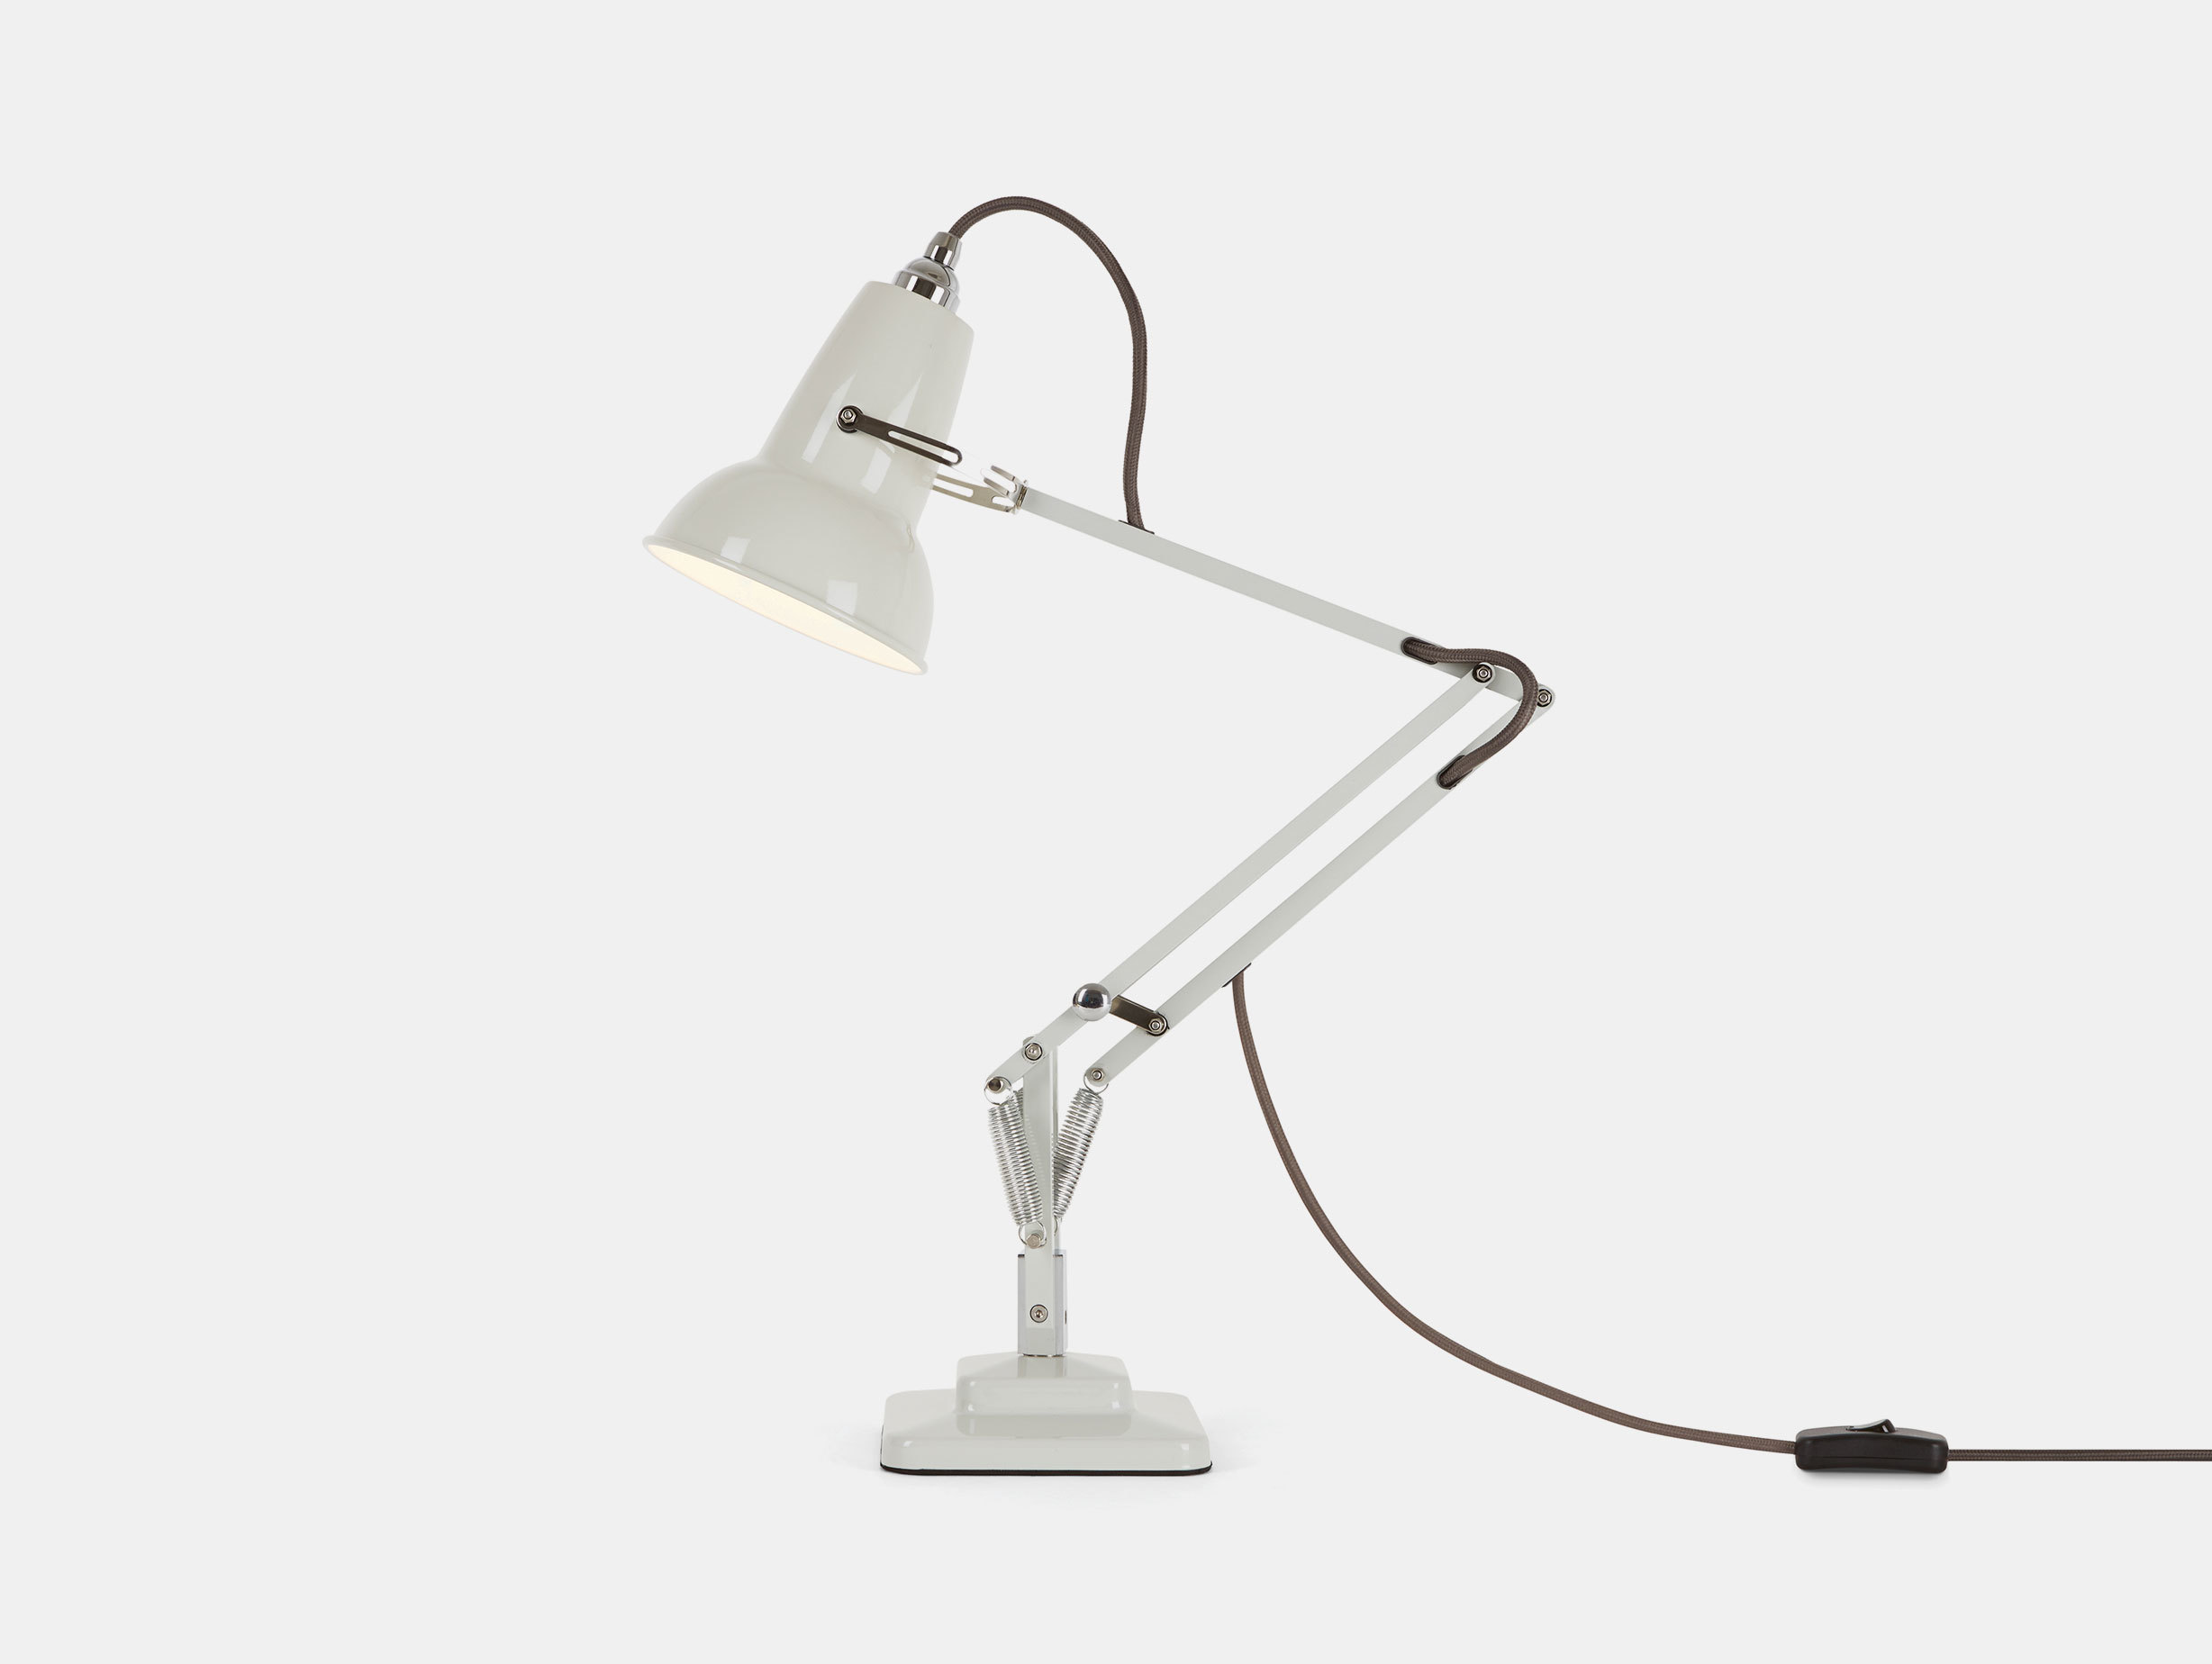 Anglepoise 1227 Mini Desk Lamp image 1